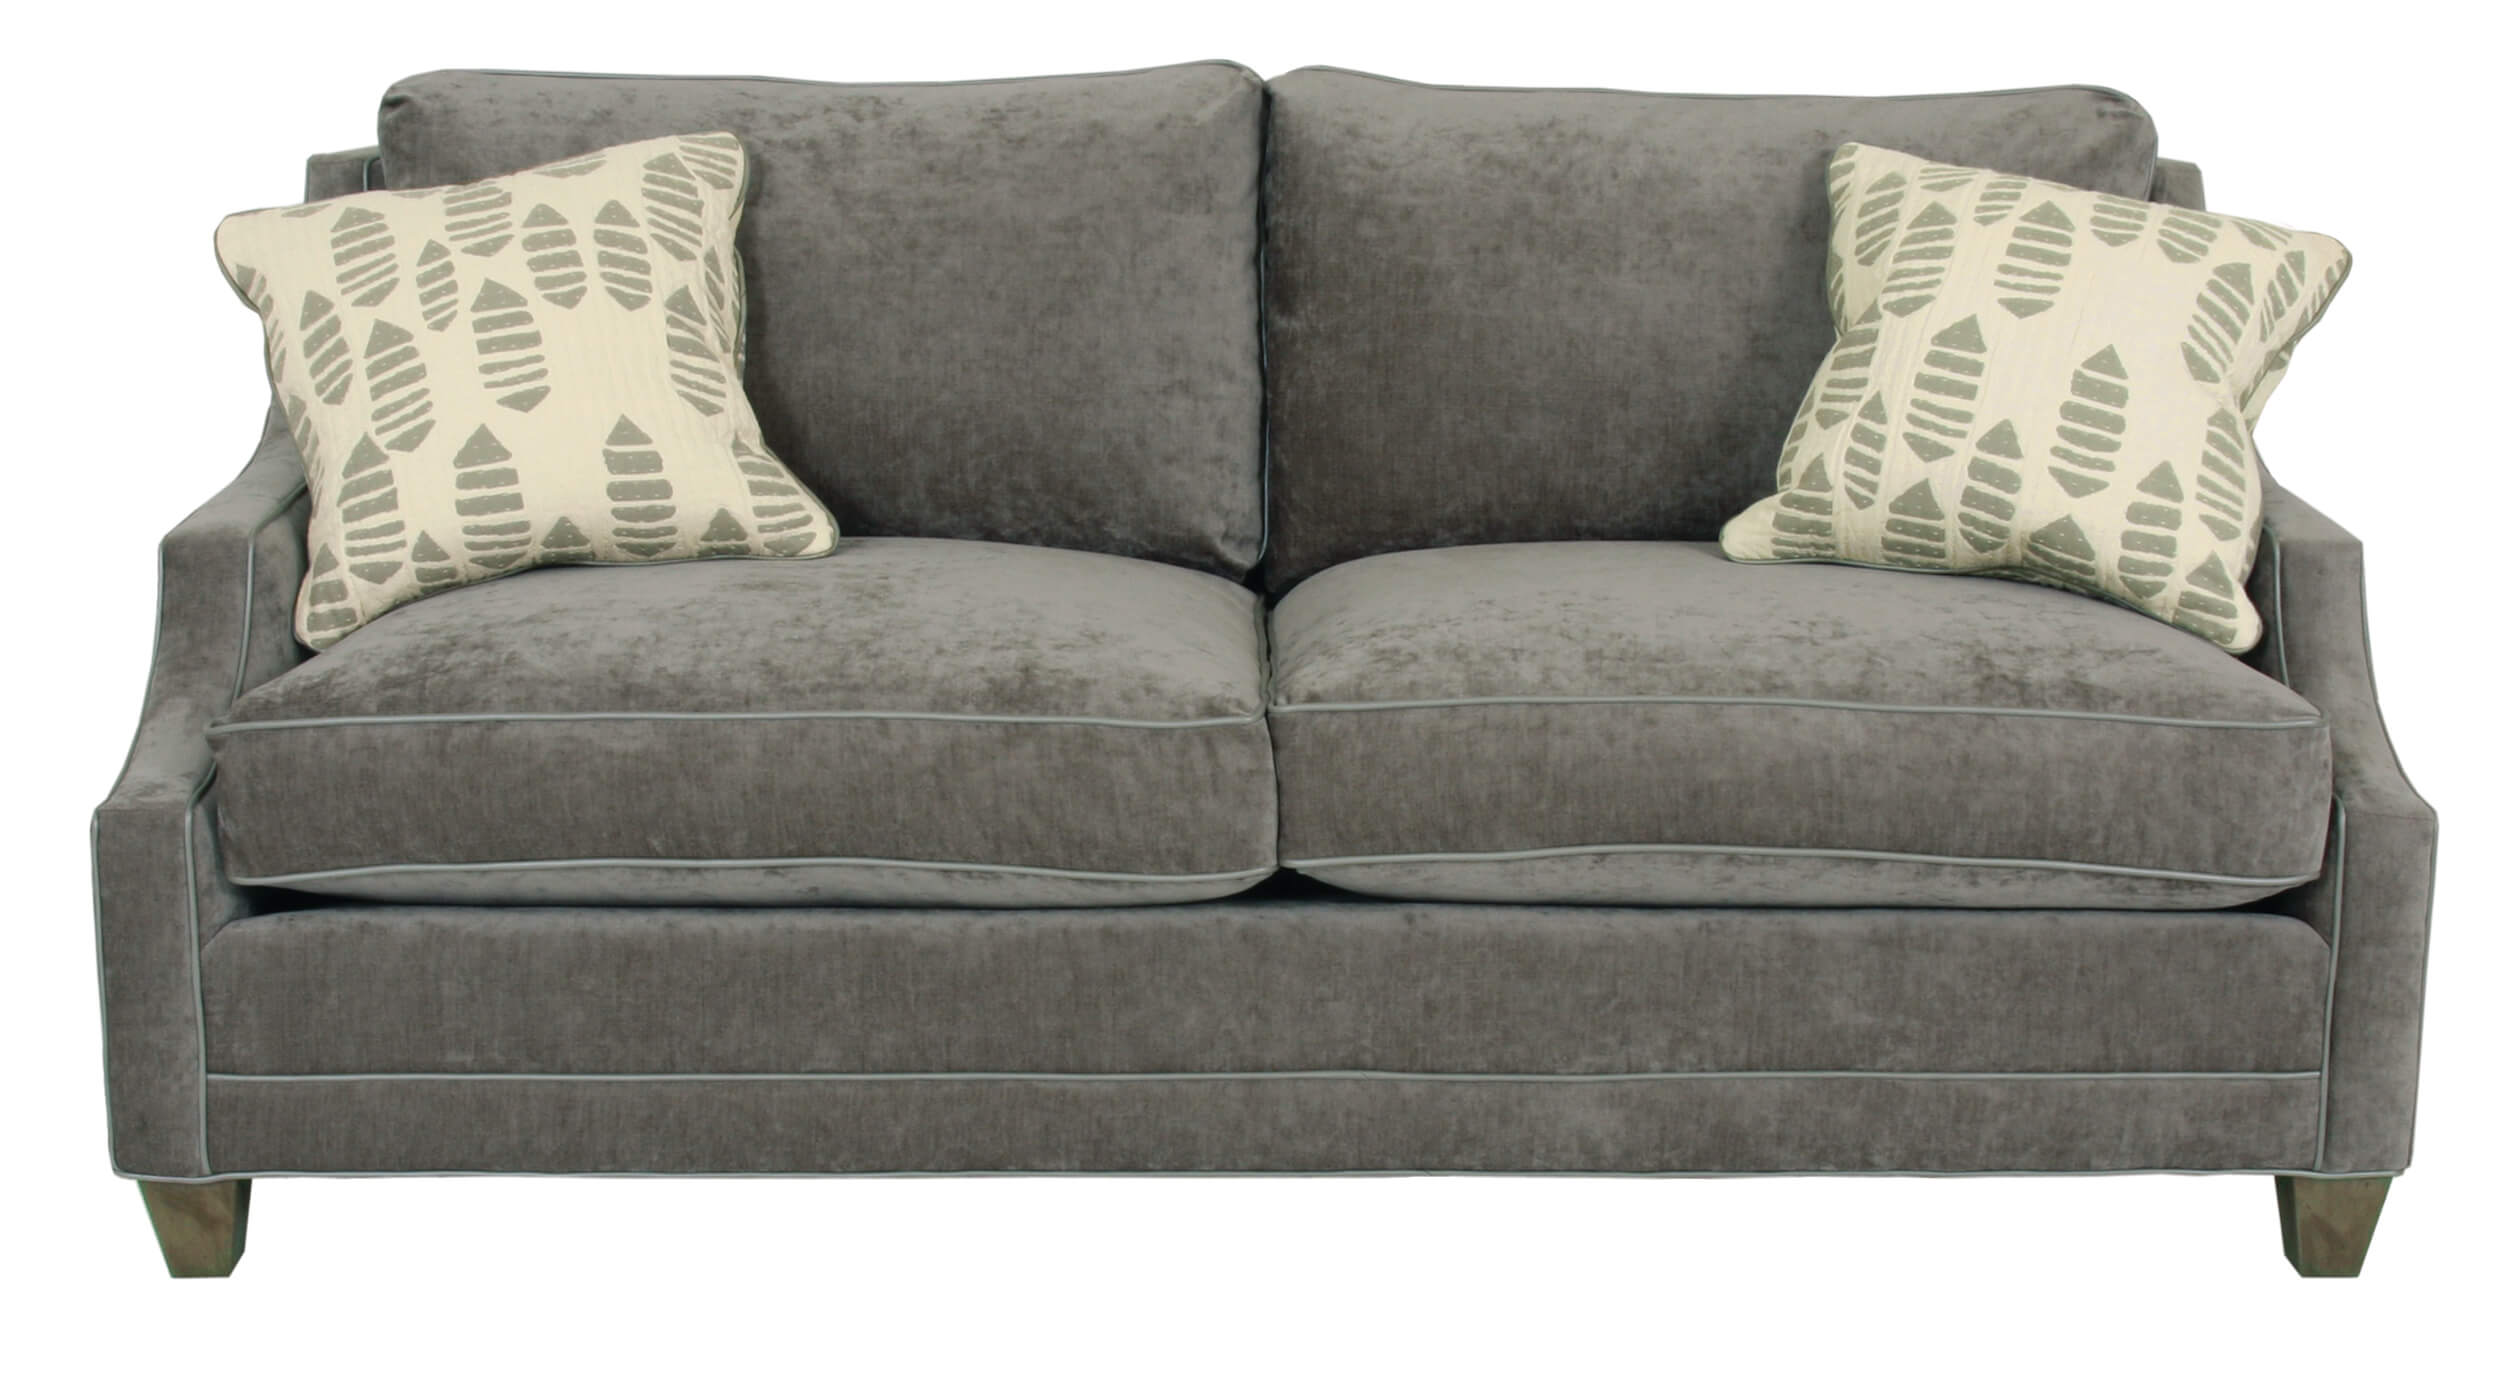 sofas by design des moines turquoise leather sofa style modern casual